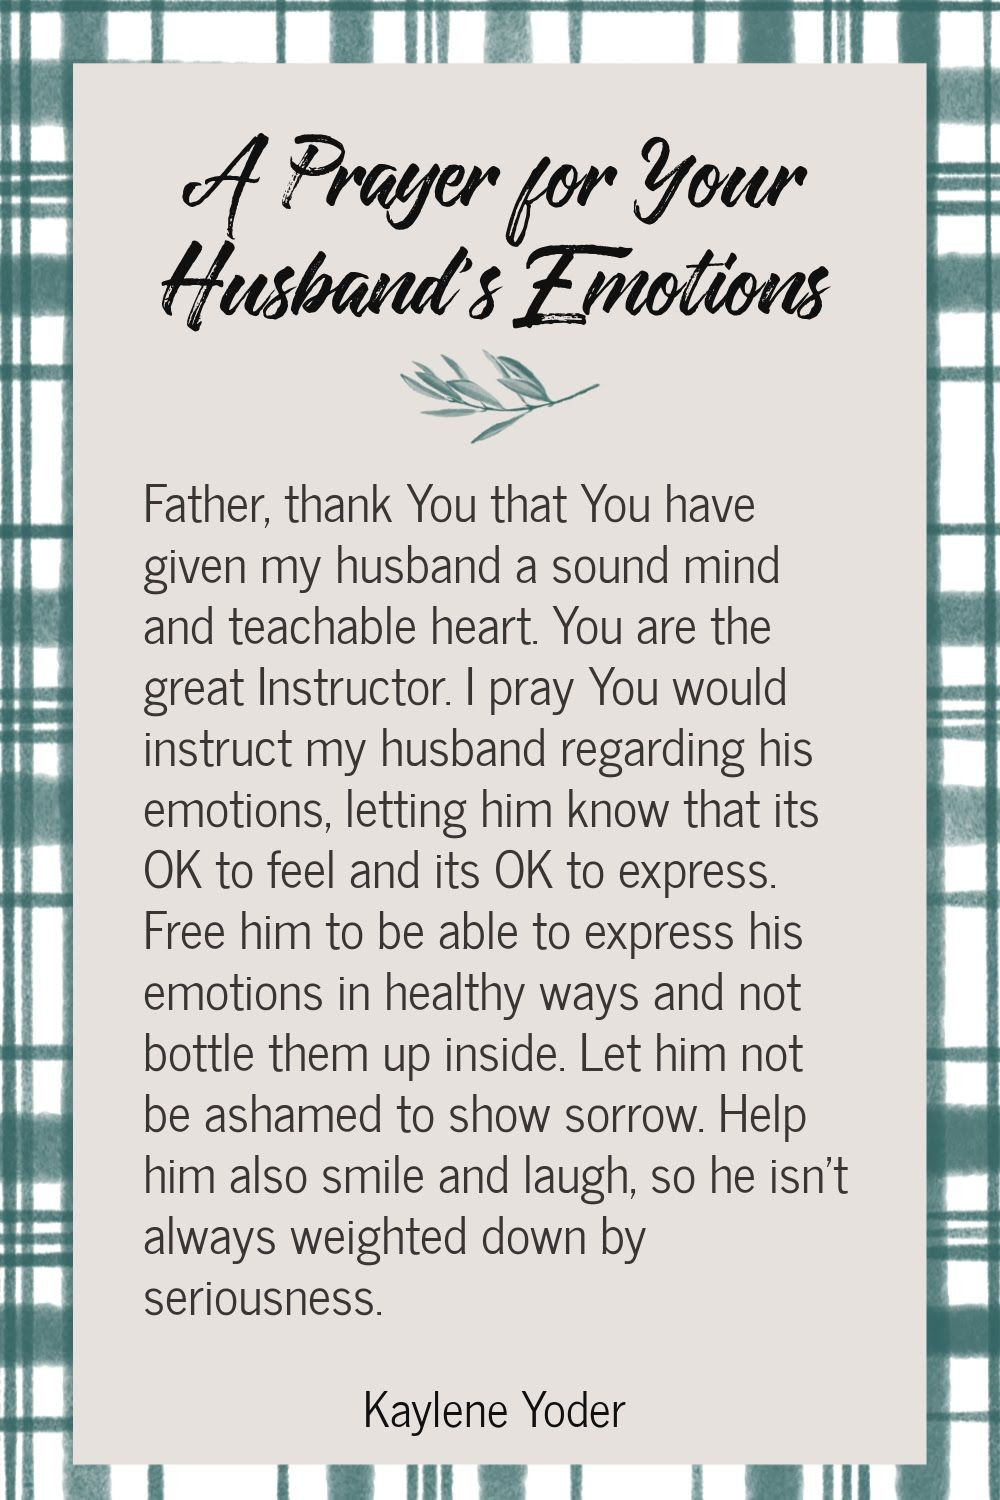 A Prayer for Your Husband's Emotions